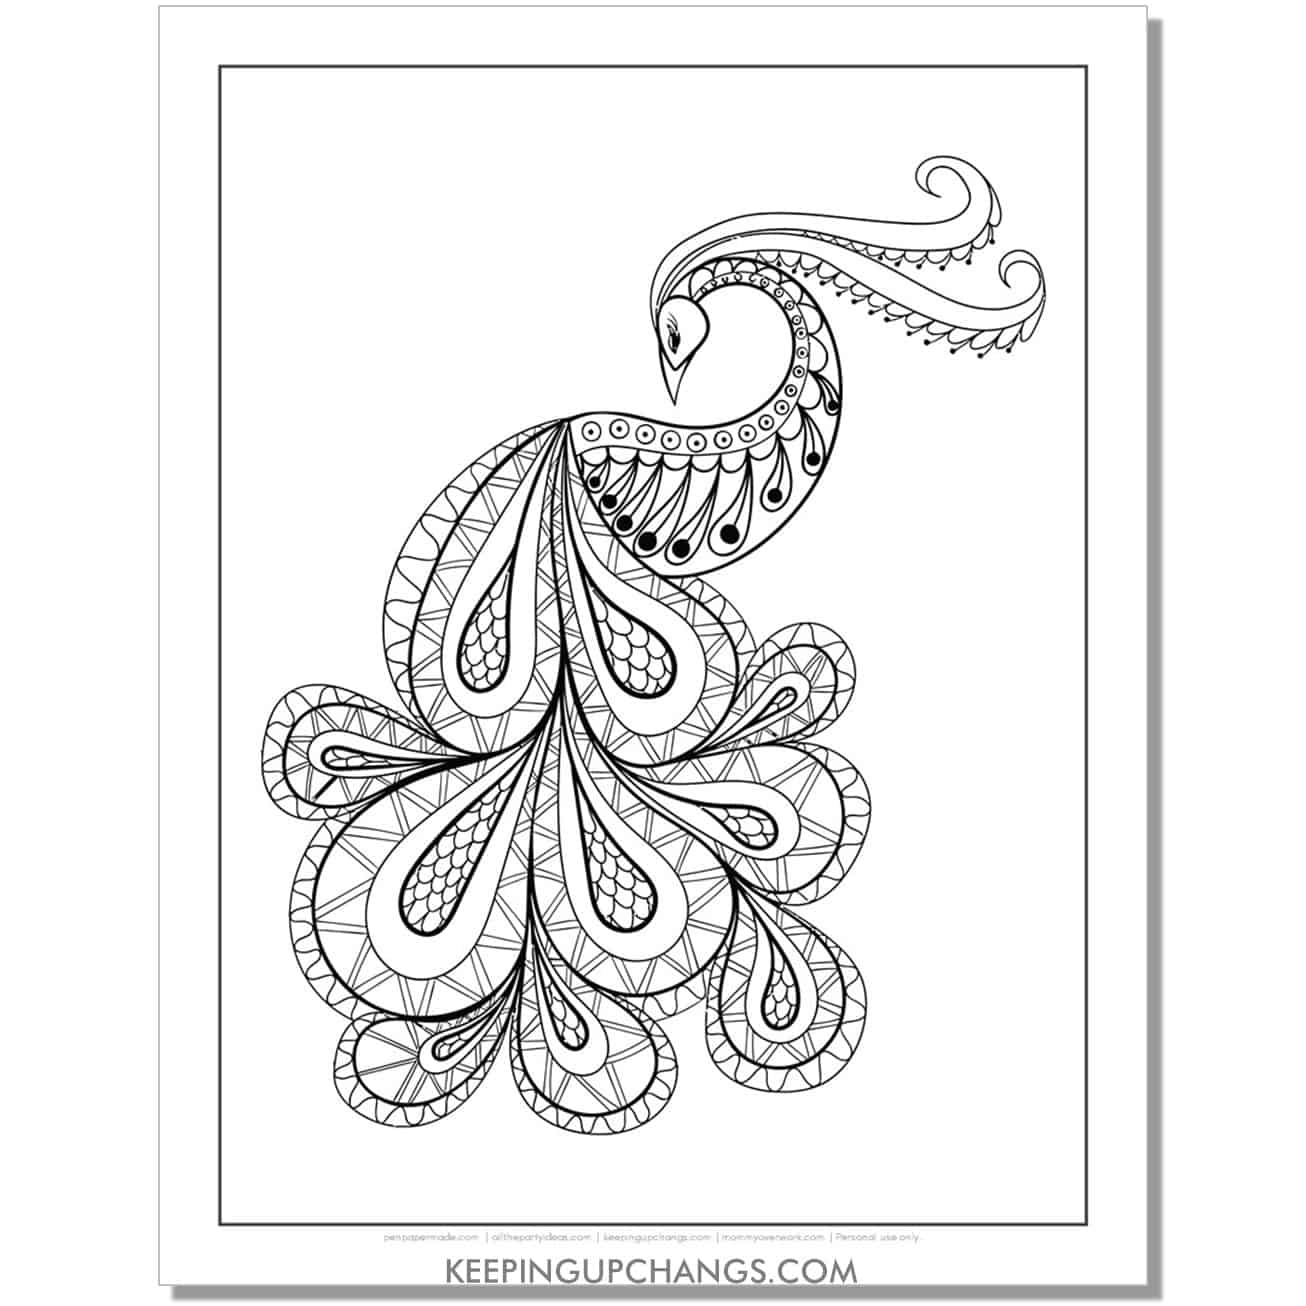 cool peacock animal coloring page.